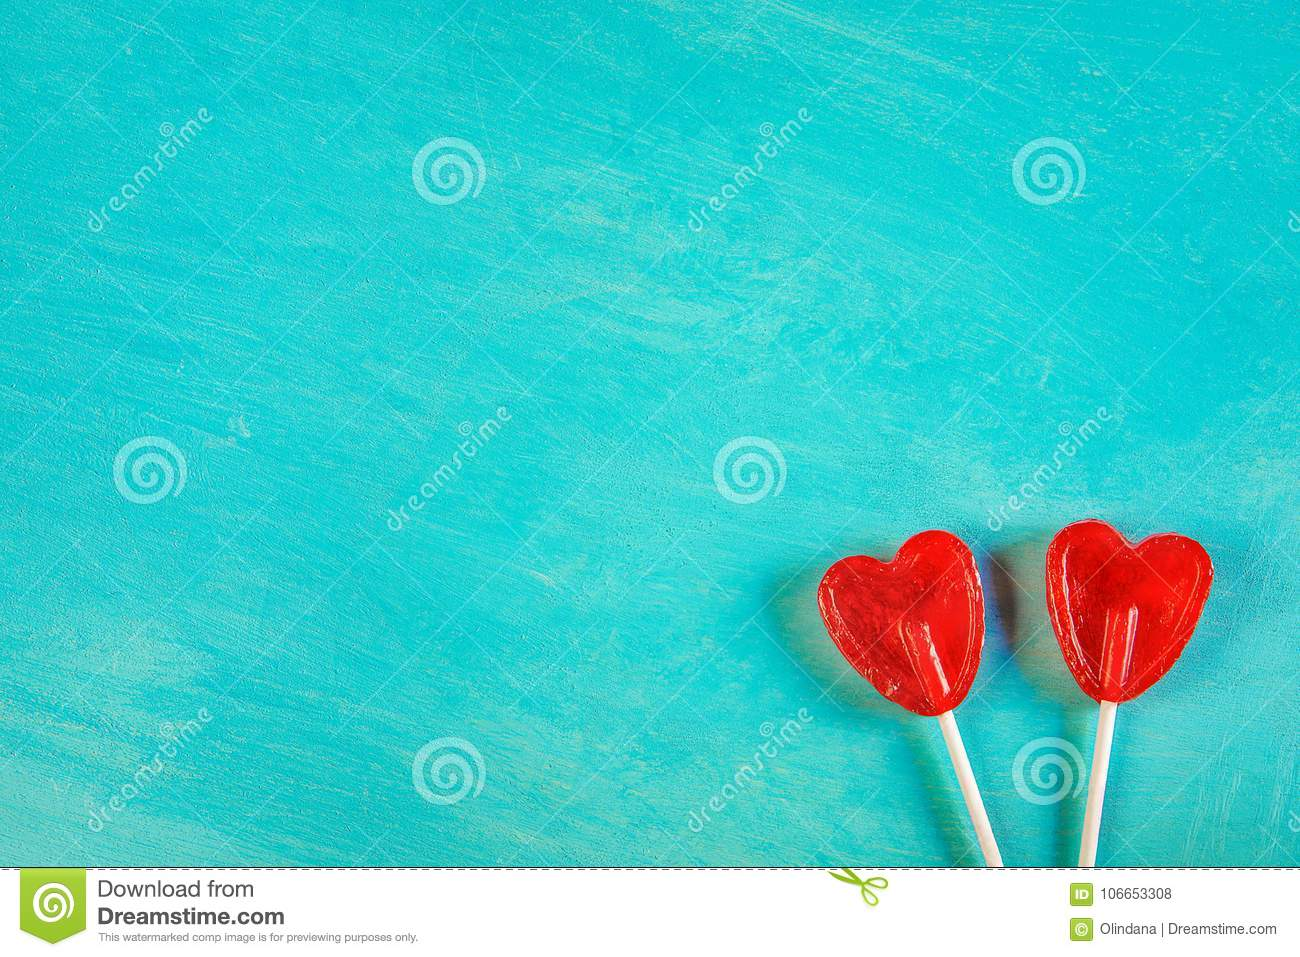 Two Red Heart Shape Candy Lollipops On Sticks On Turquoise